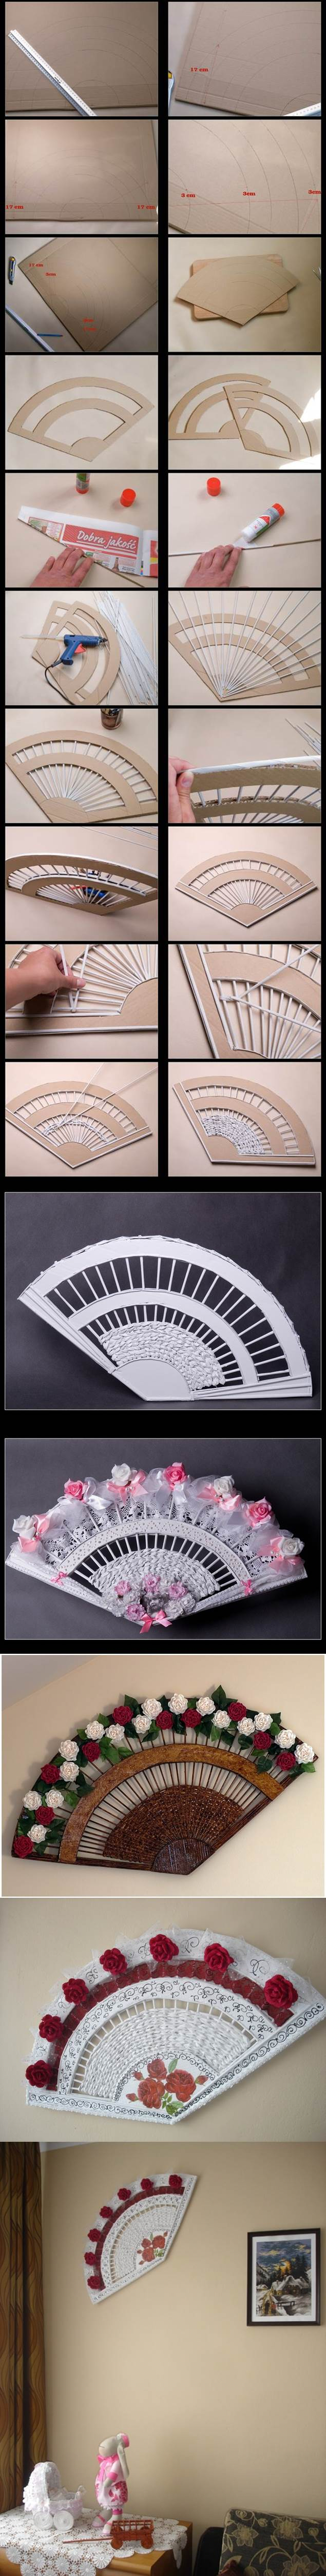 DIY Decorative Fan from Old Newspaper and Cardboard